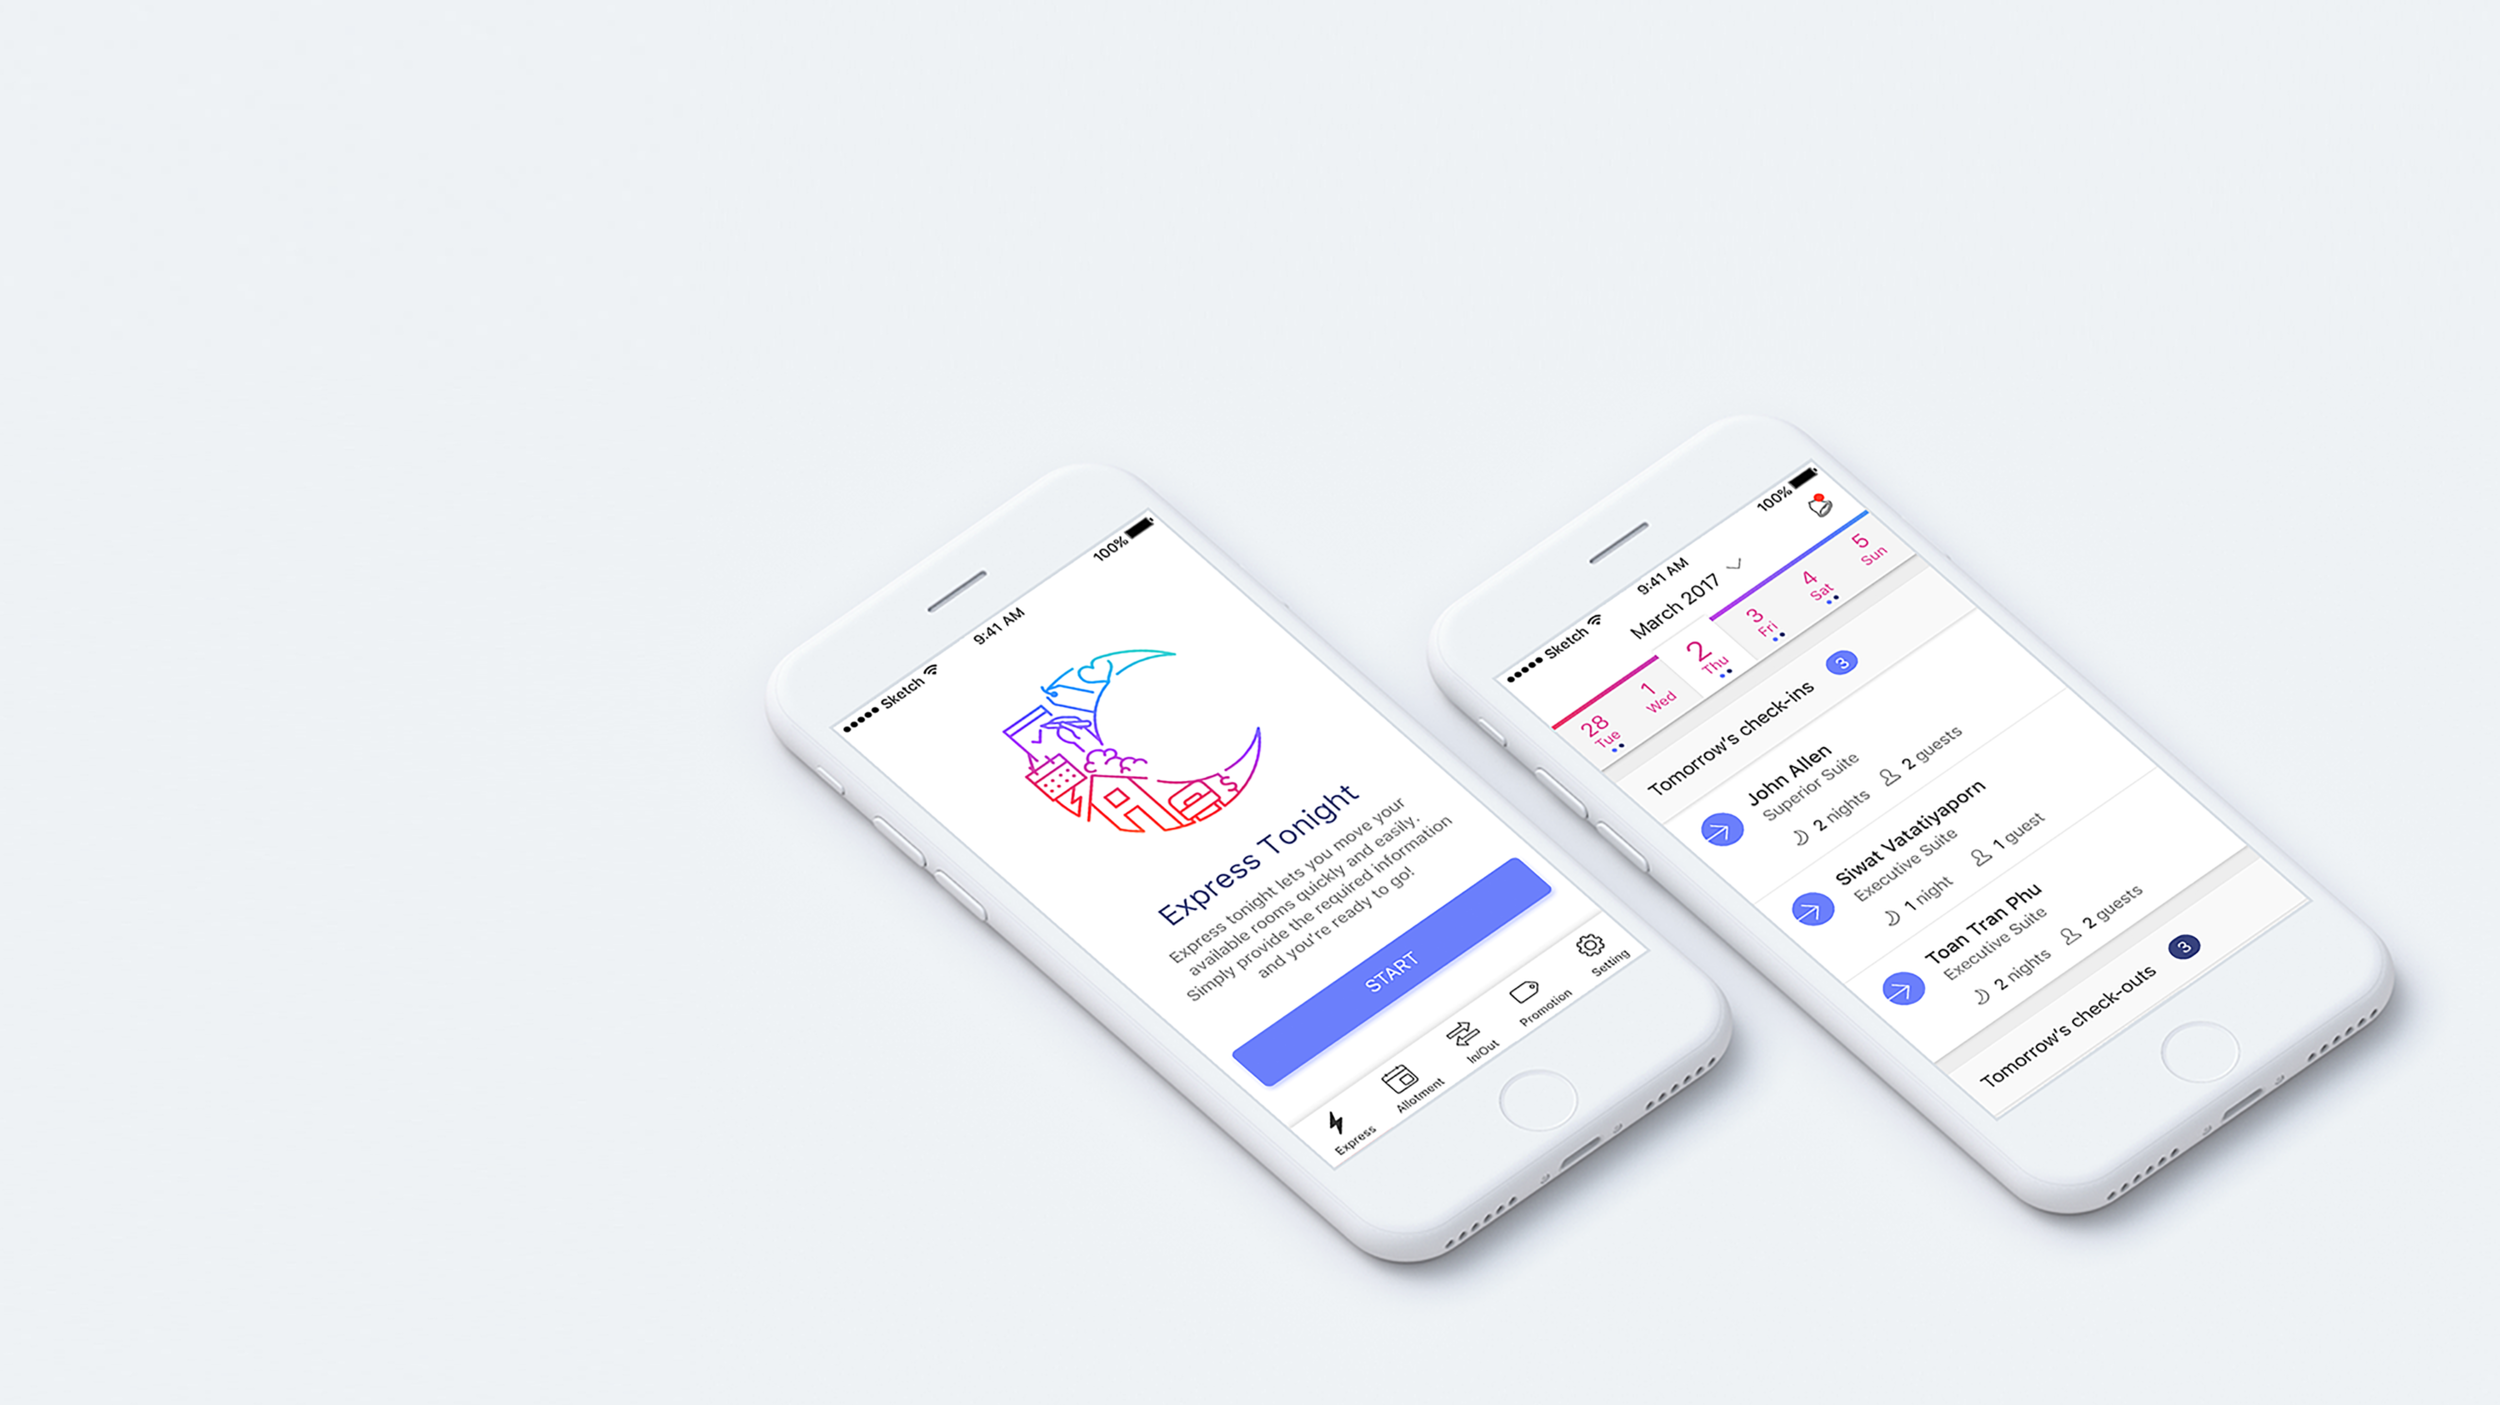 Some illustration elements using our gradient color palette added a level of friendliness to an otherwise purely utilitarian platform.